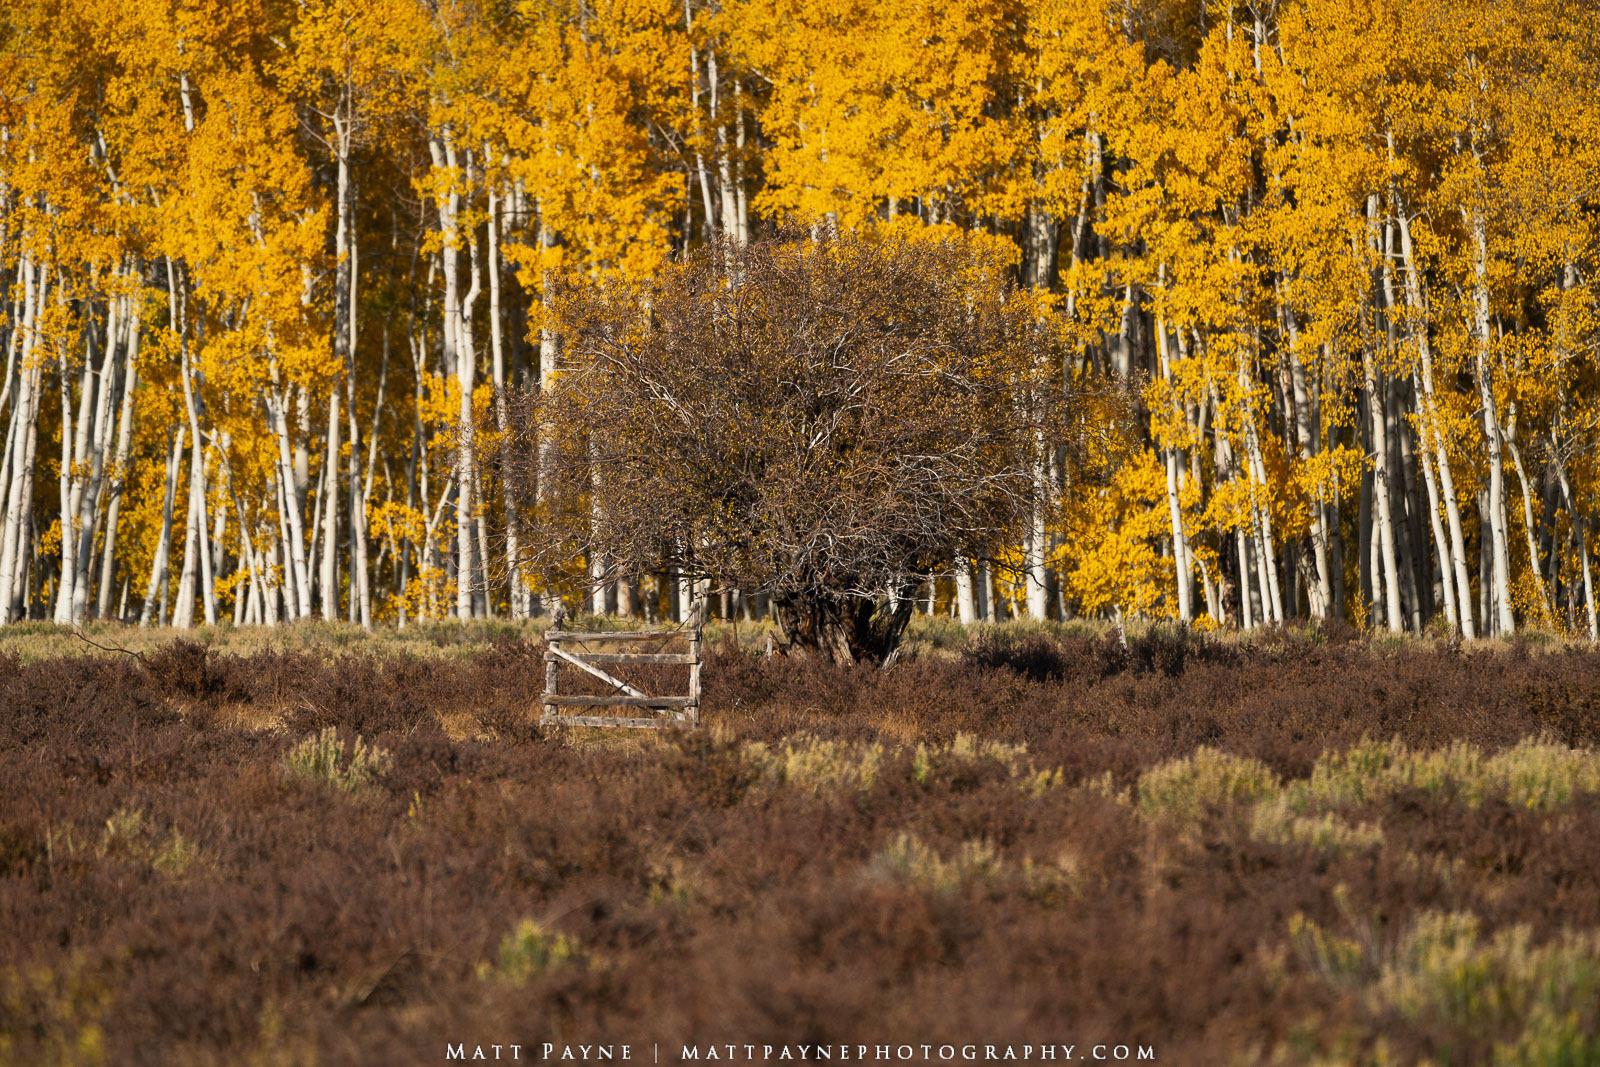 This lone brown willow tree caught my attention in the distance while driving a remote country road in the San Juan Mountains...